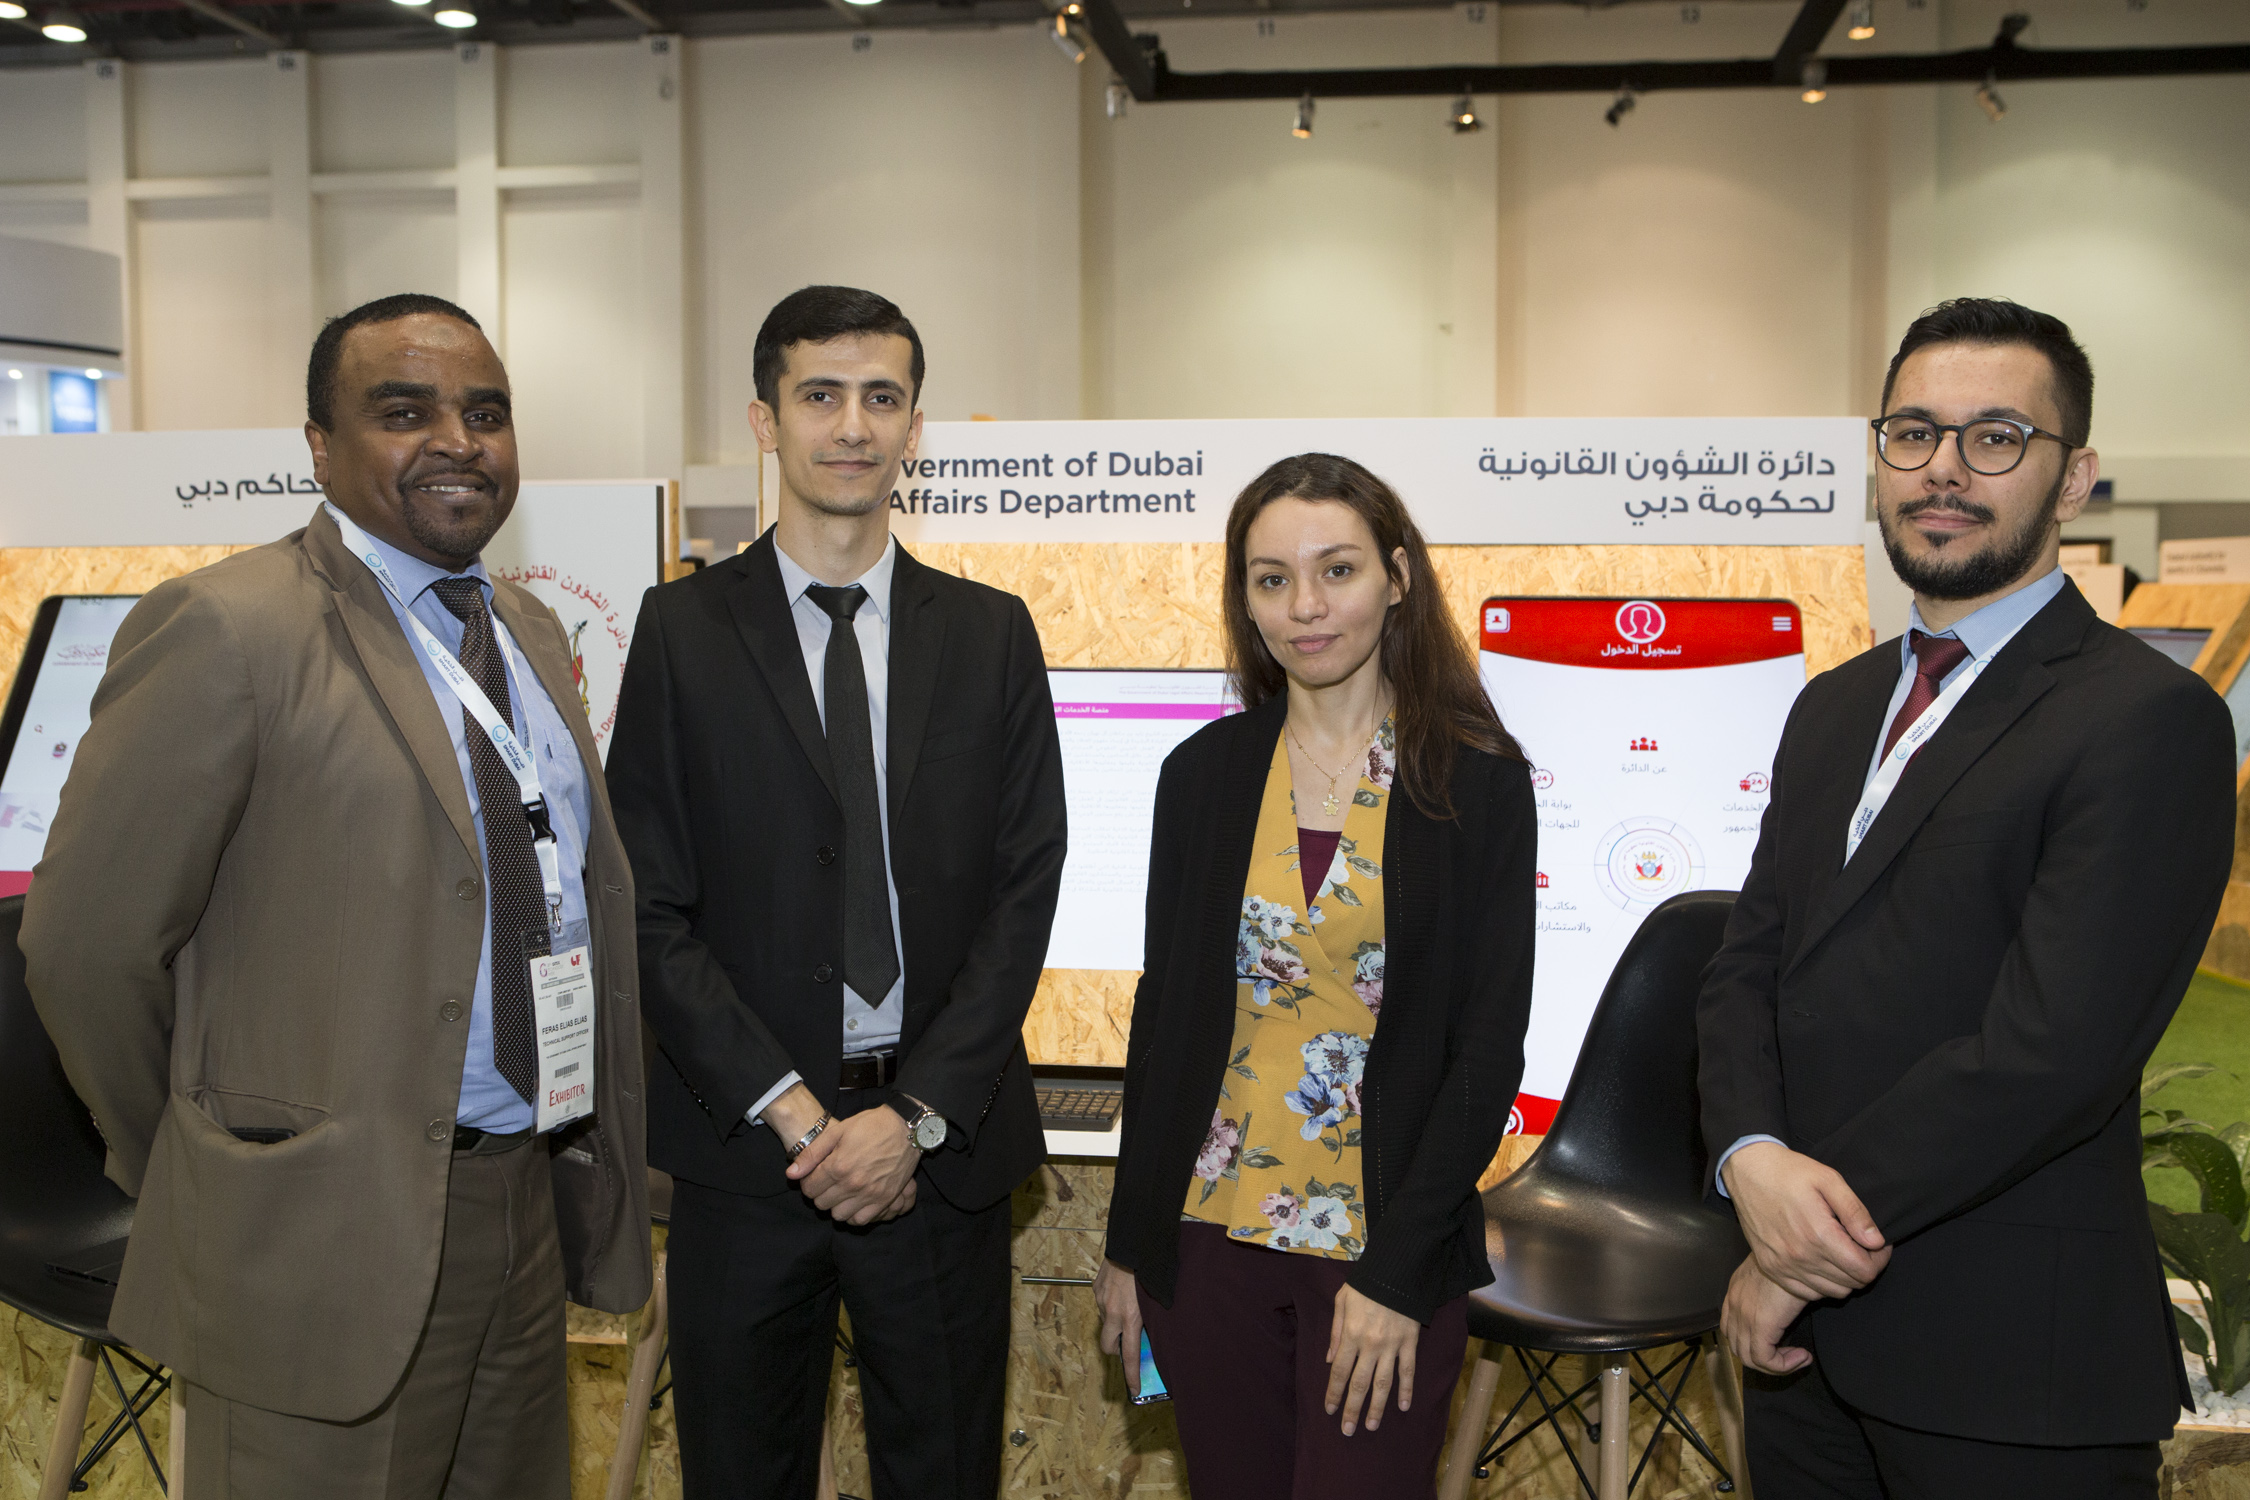 Legal Affairs Department concludes its Participation in GITEX Technology Week 2018